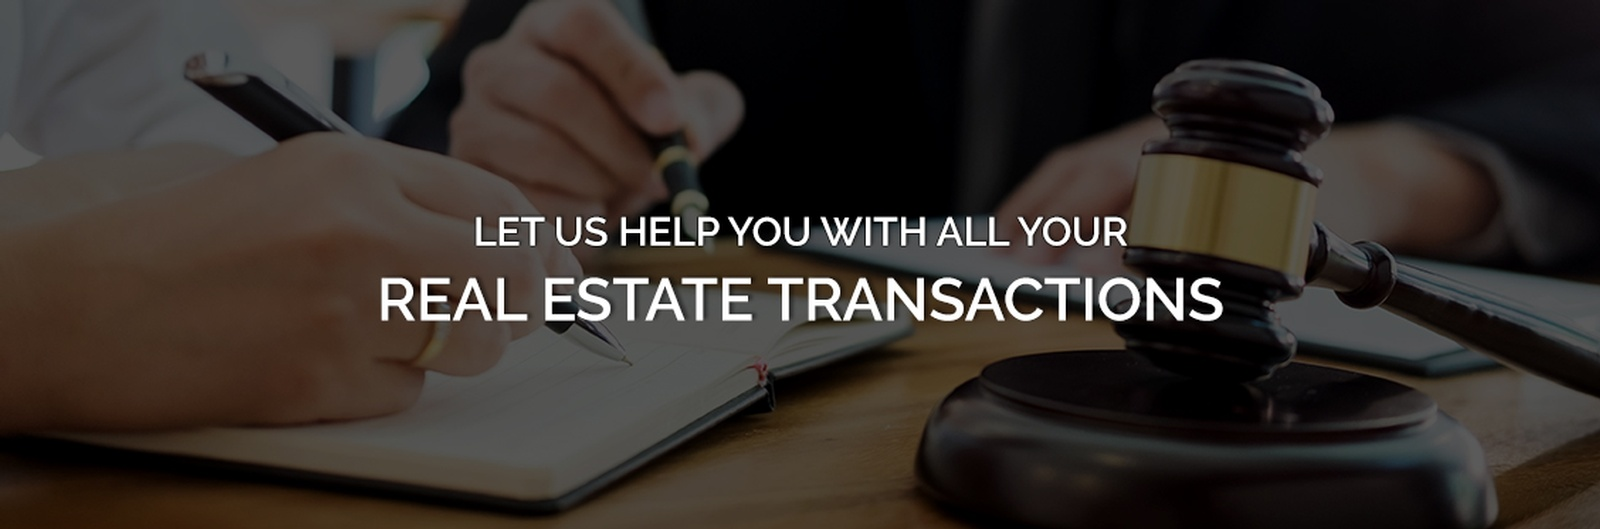 Real Estate Services St Cloud Minnesota